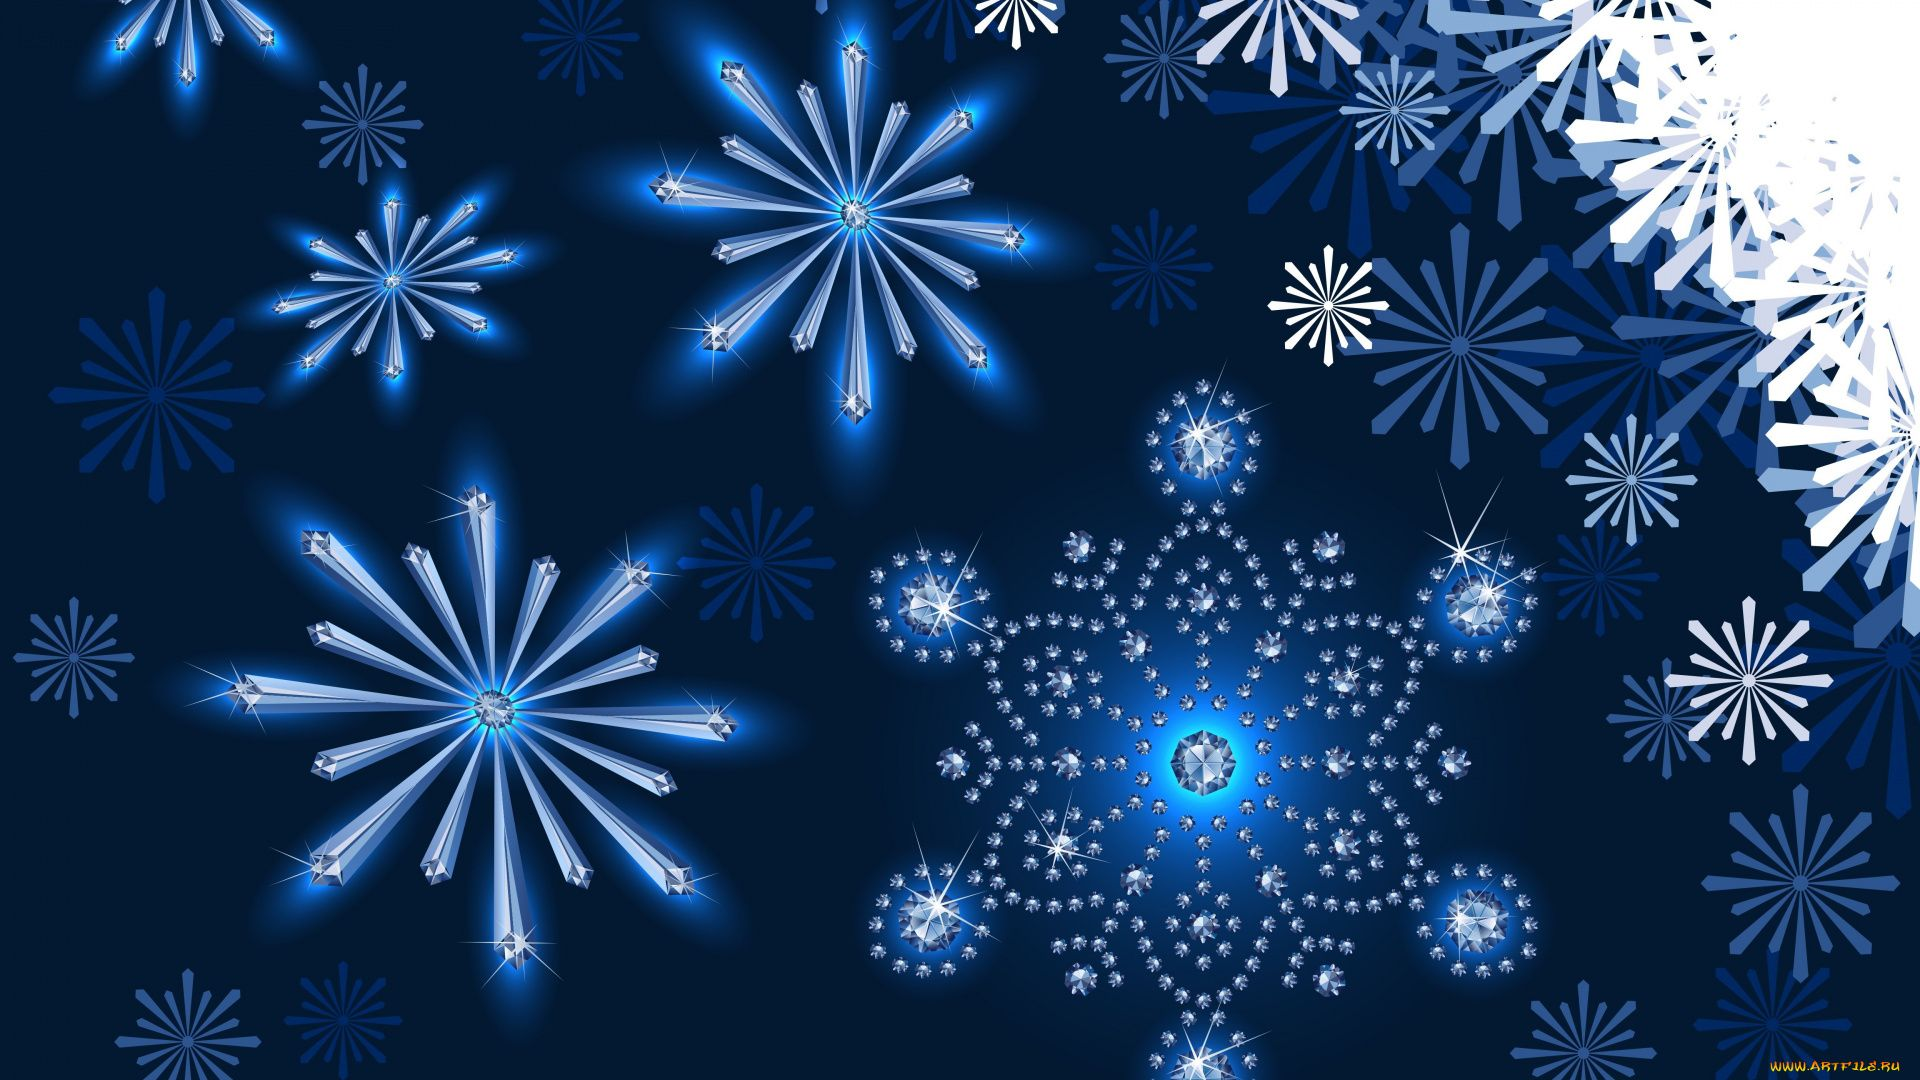 New Year With Snowflakes Pic